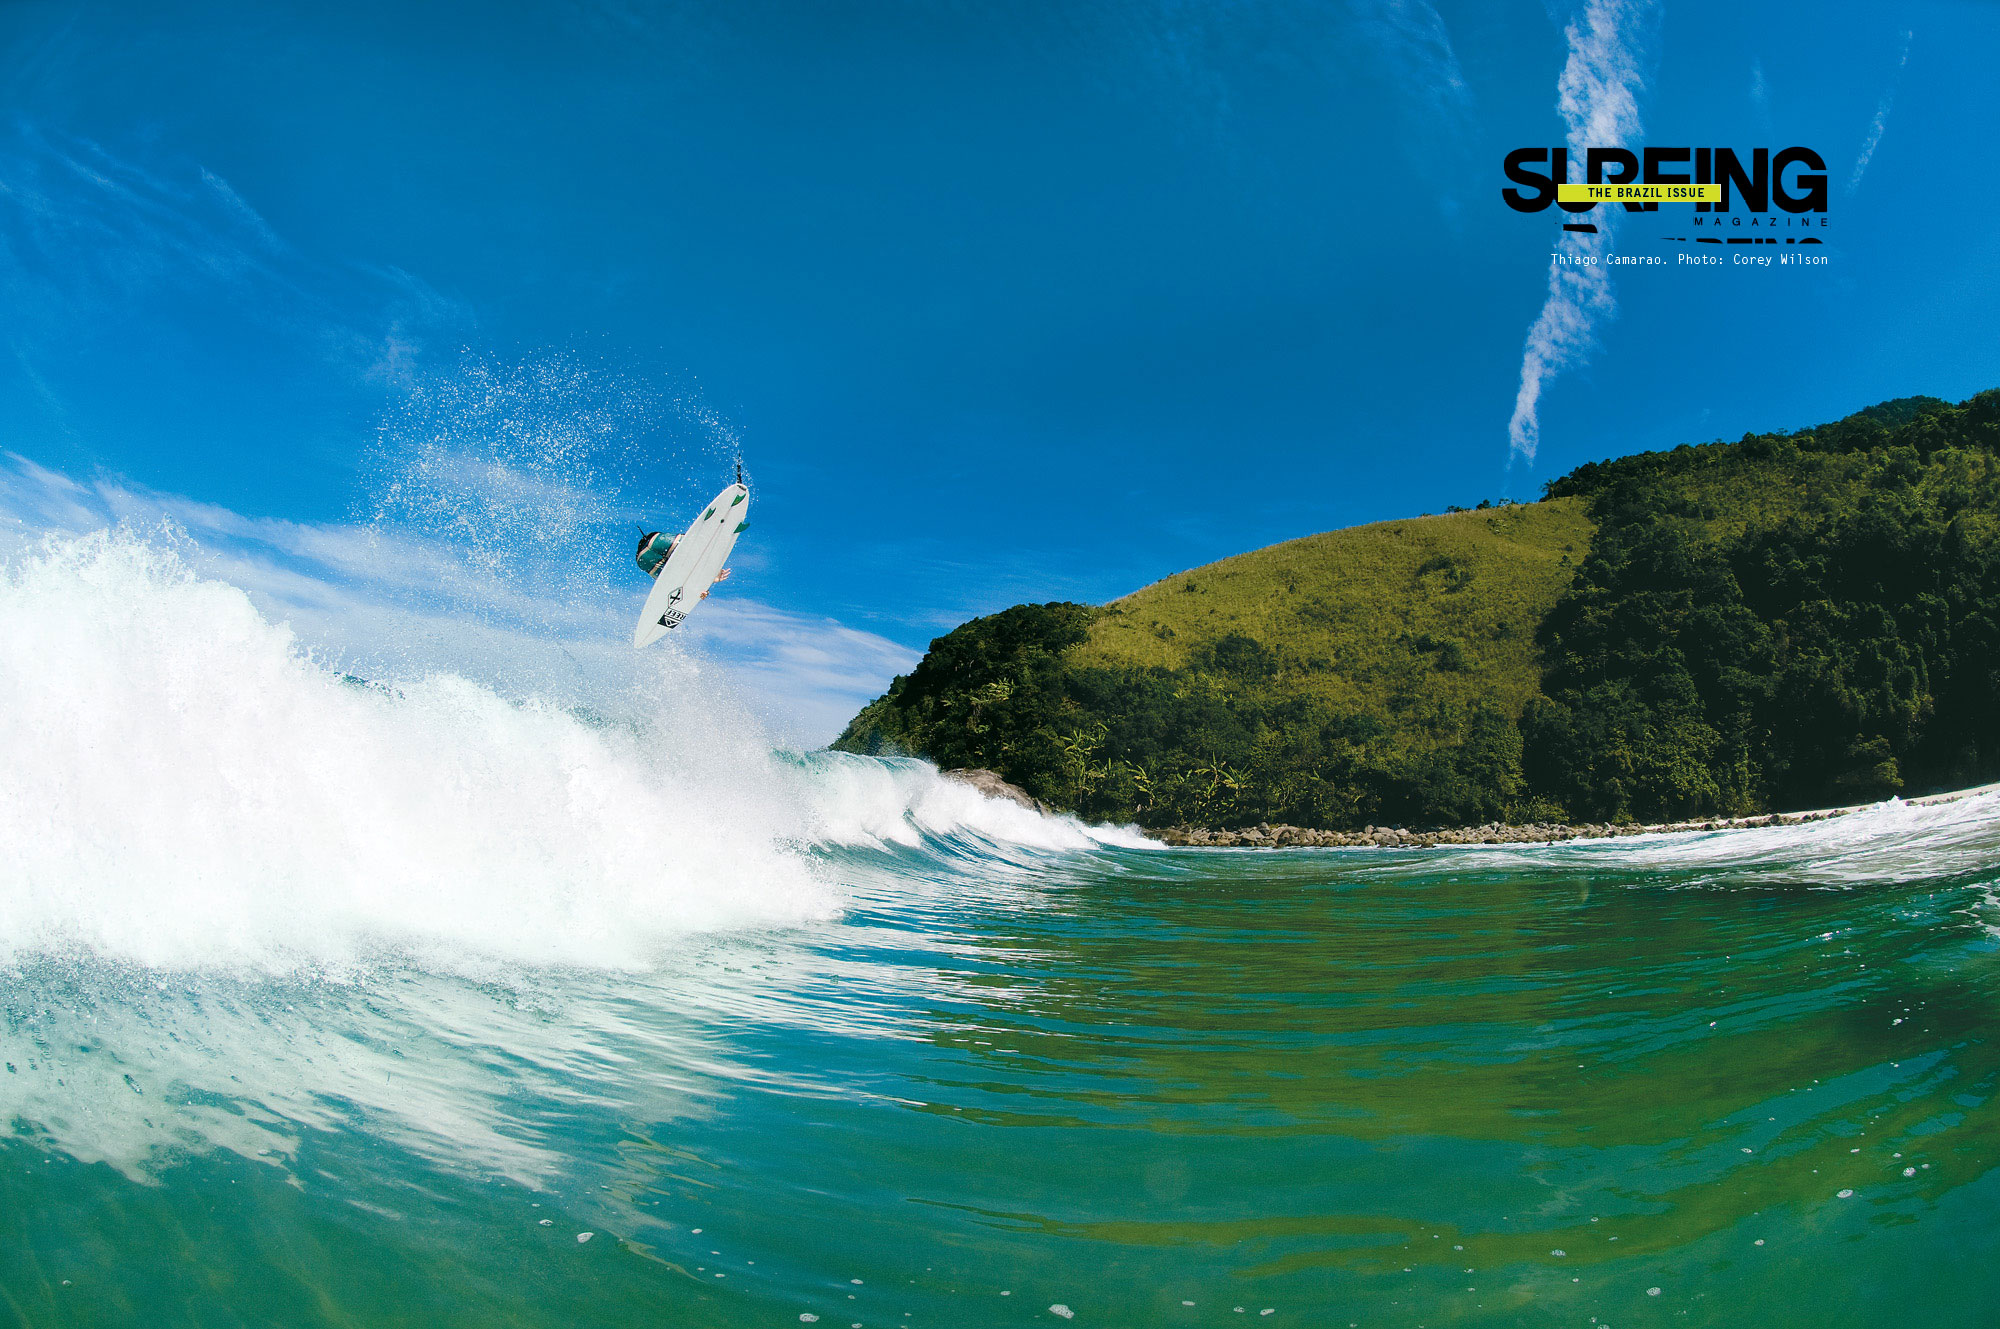 October Issue Wallpaper SURFING Magazine   HD Wallpapers 2000x1329